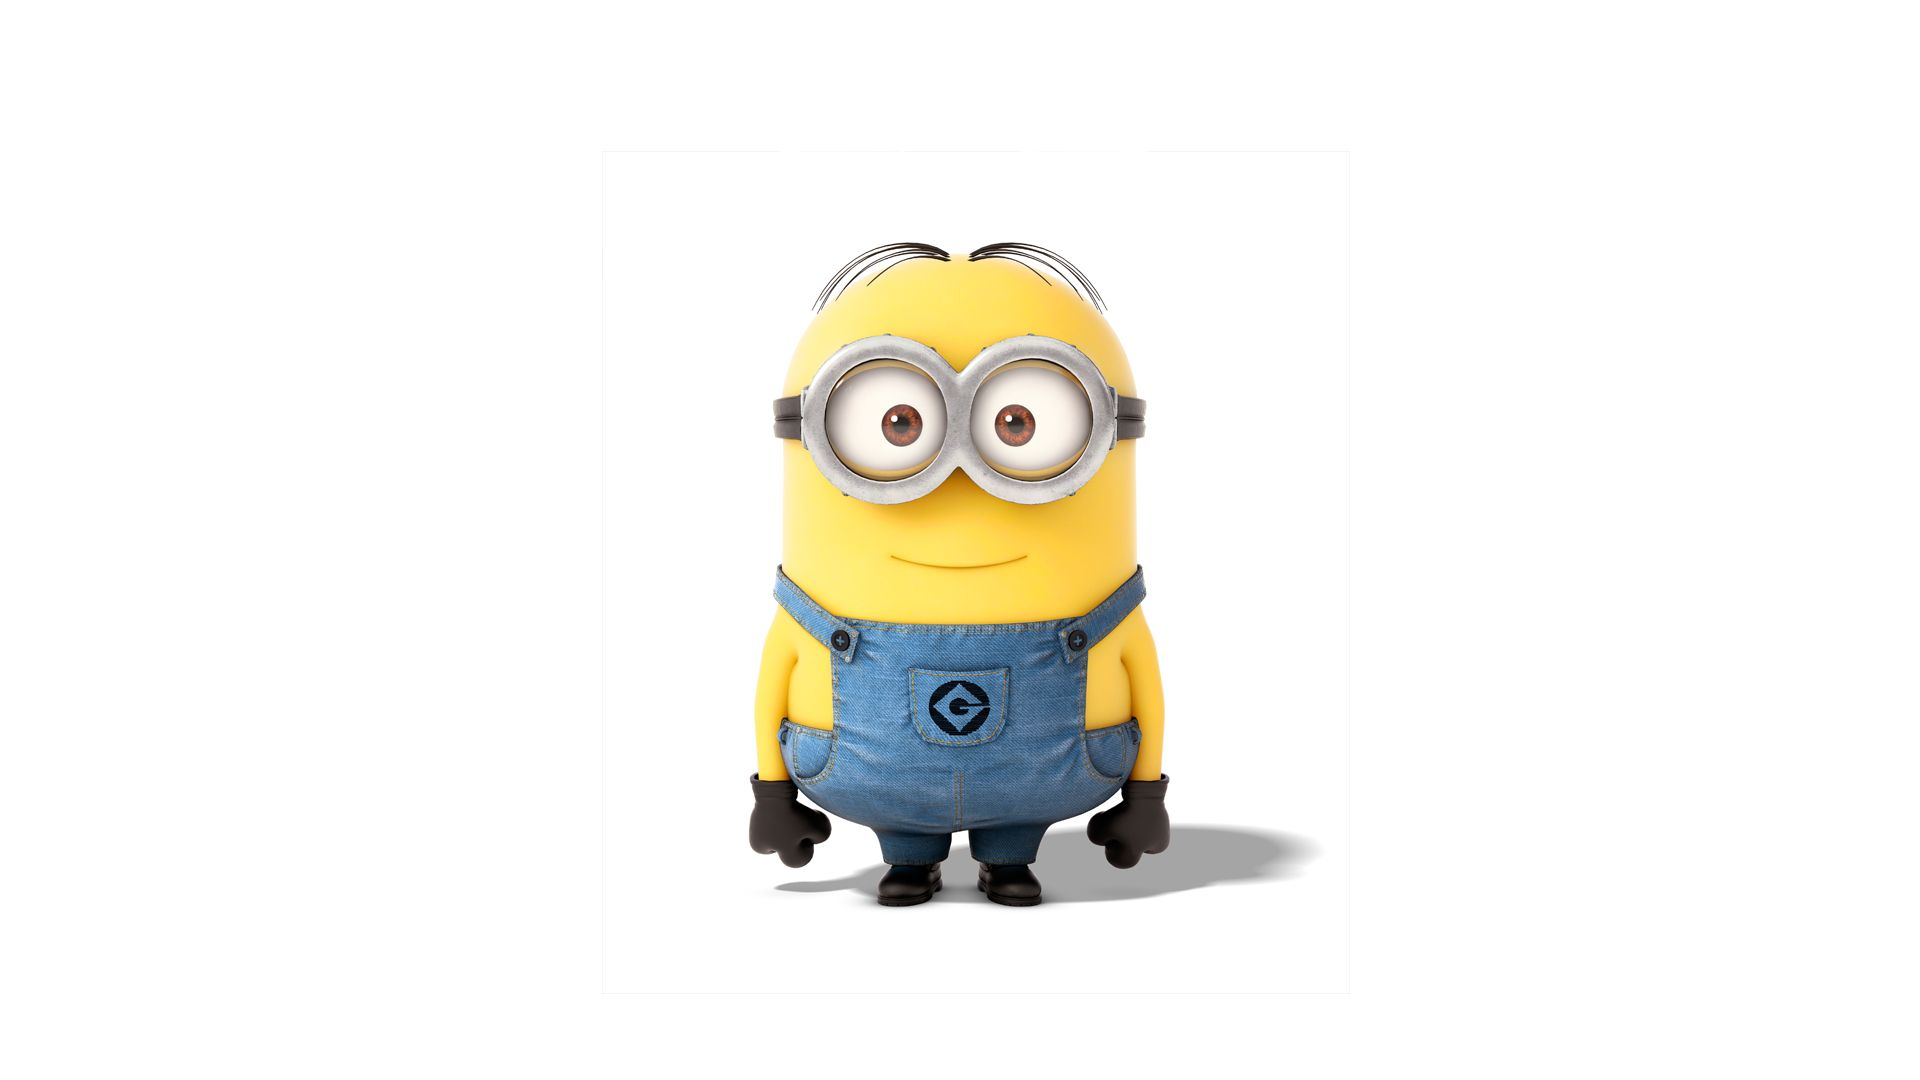 minions hd wallpaper free minions despicable me hd wallpaper